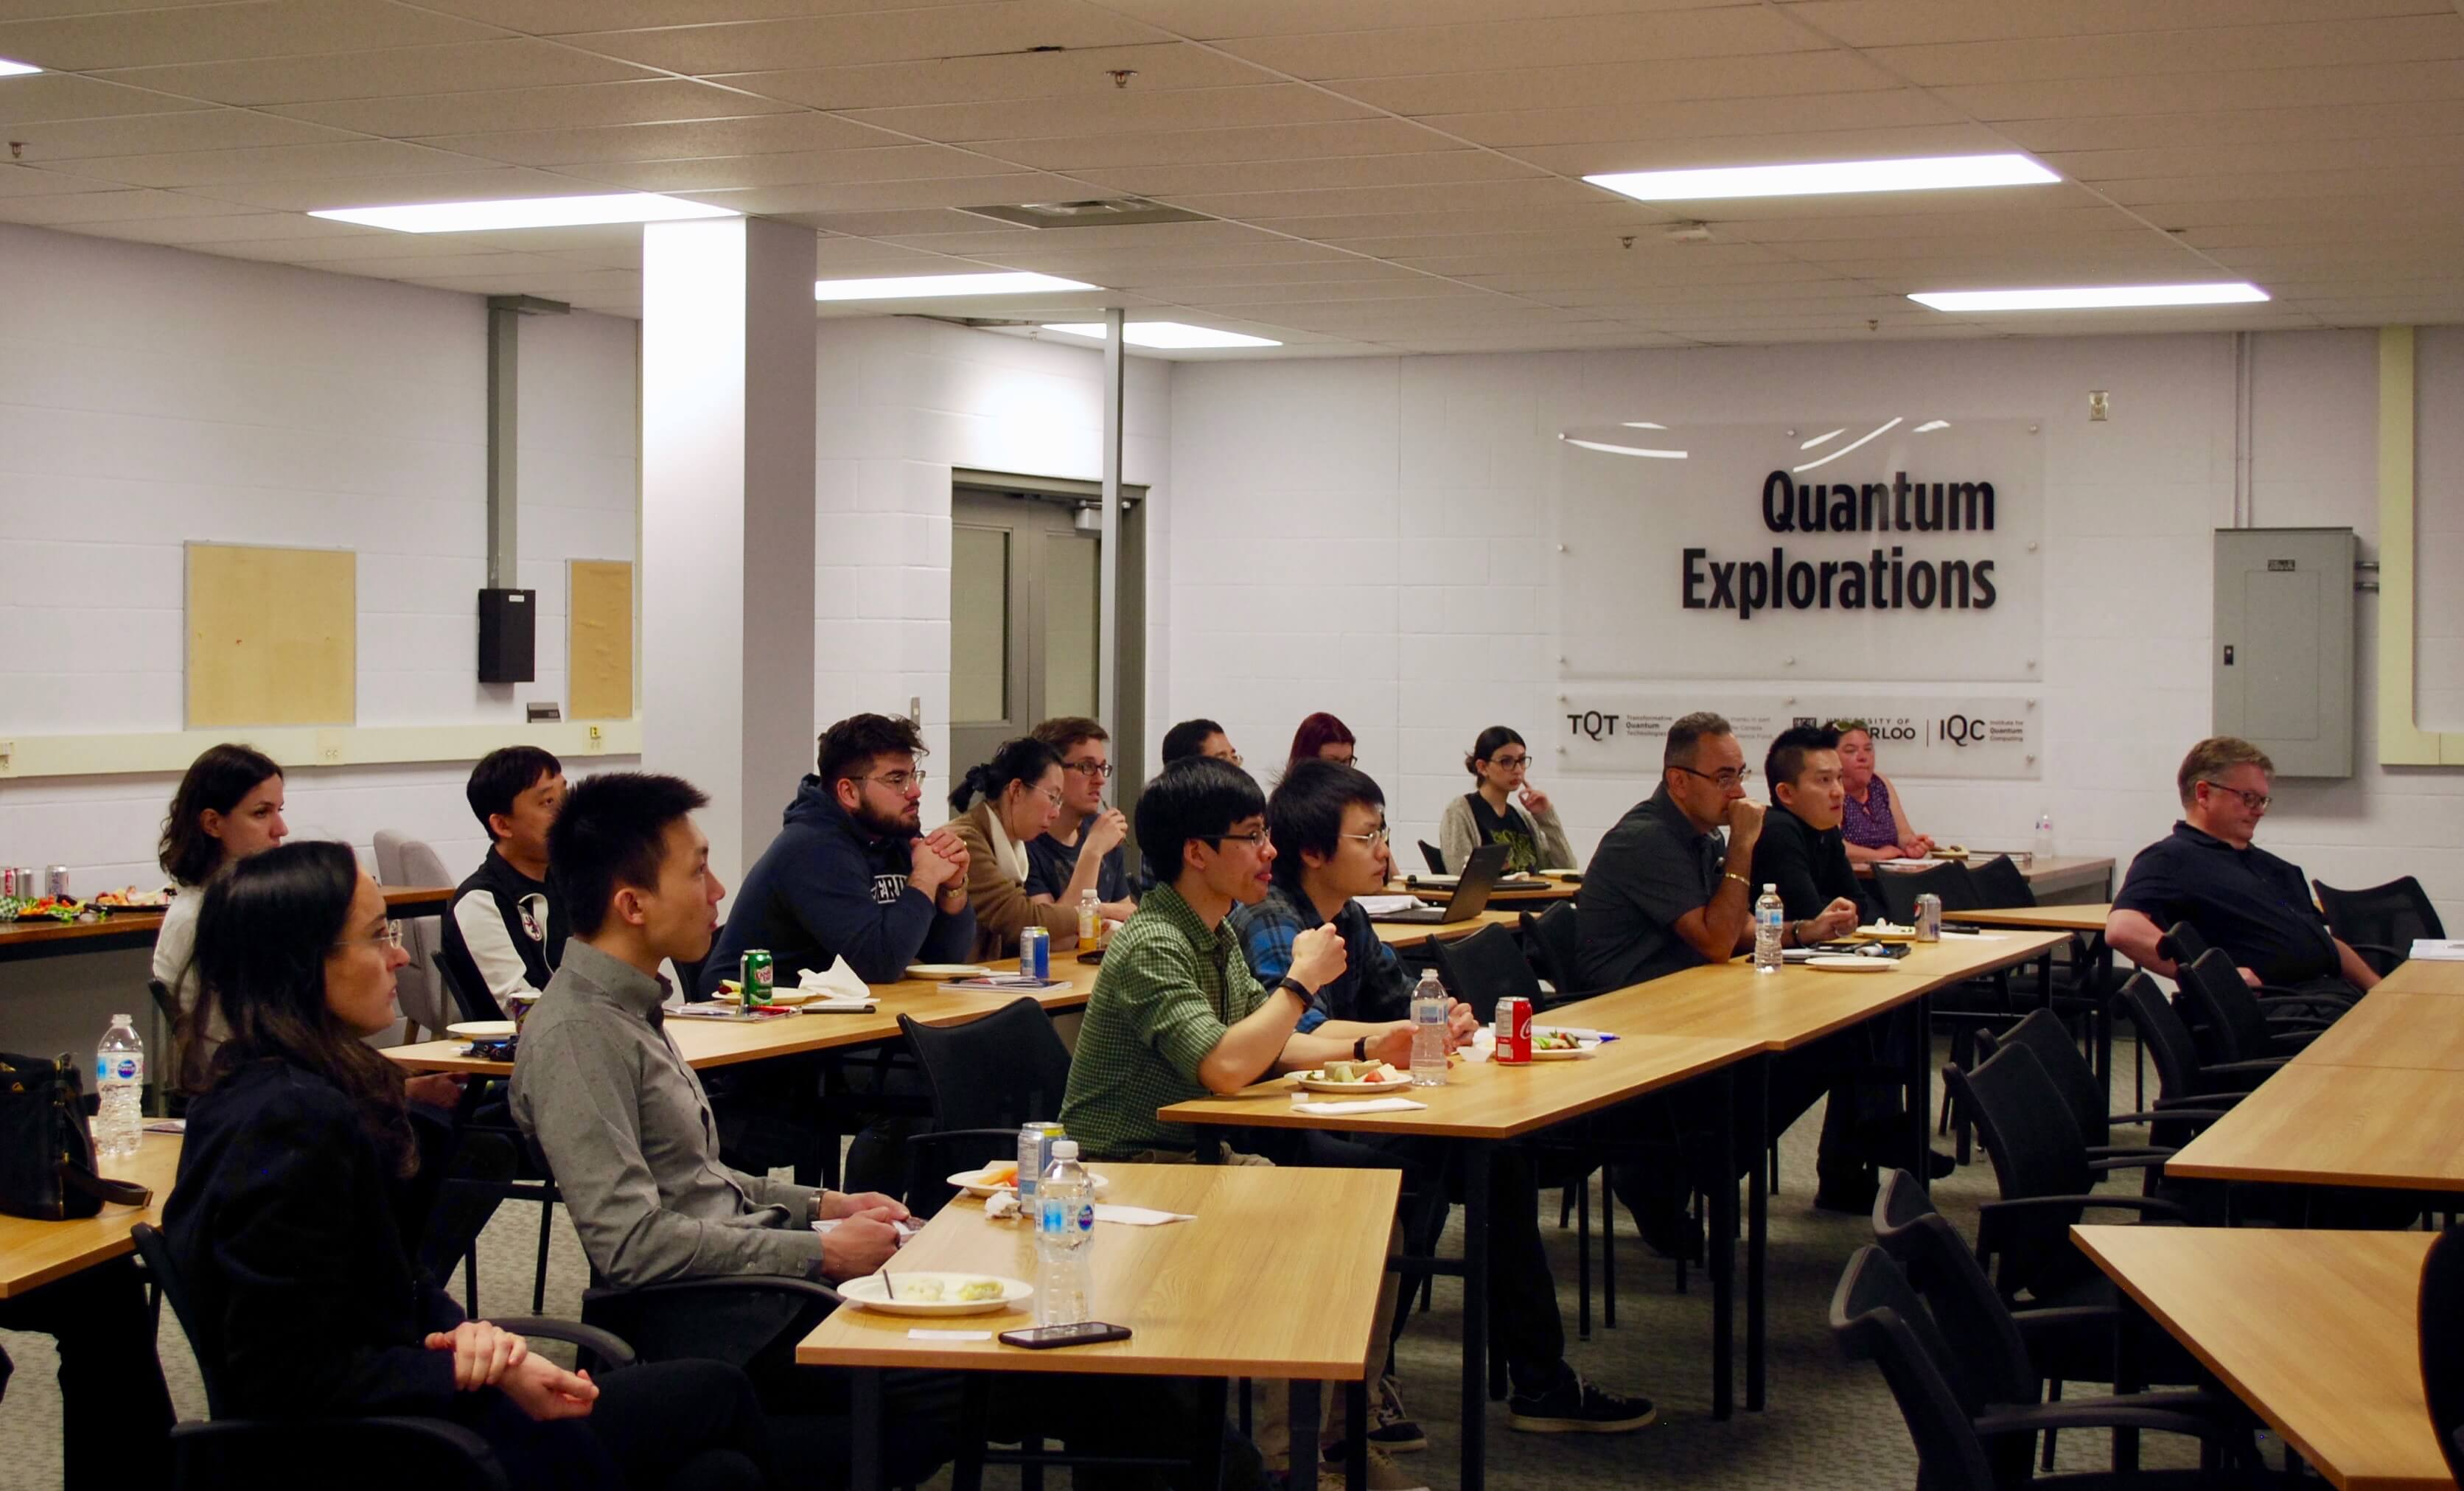 TQT hosts Lunch & Learn: Funding the Quantum Enterprise